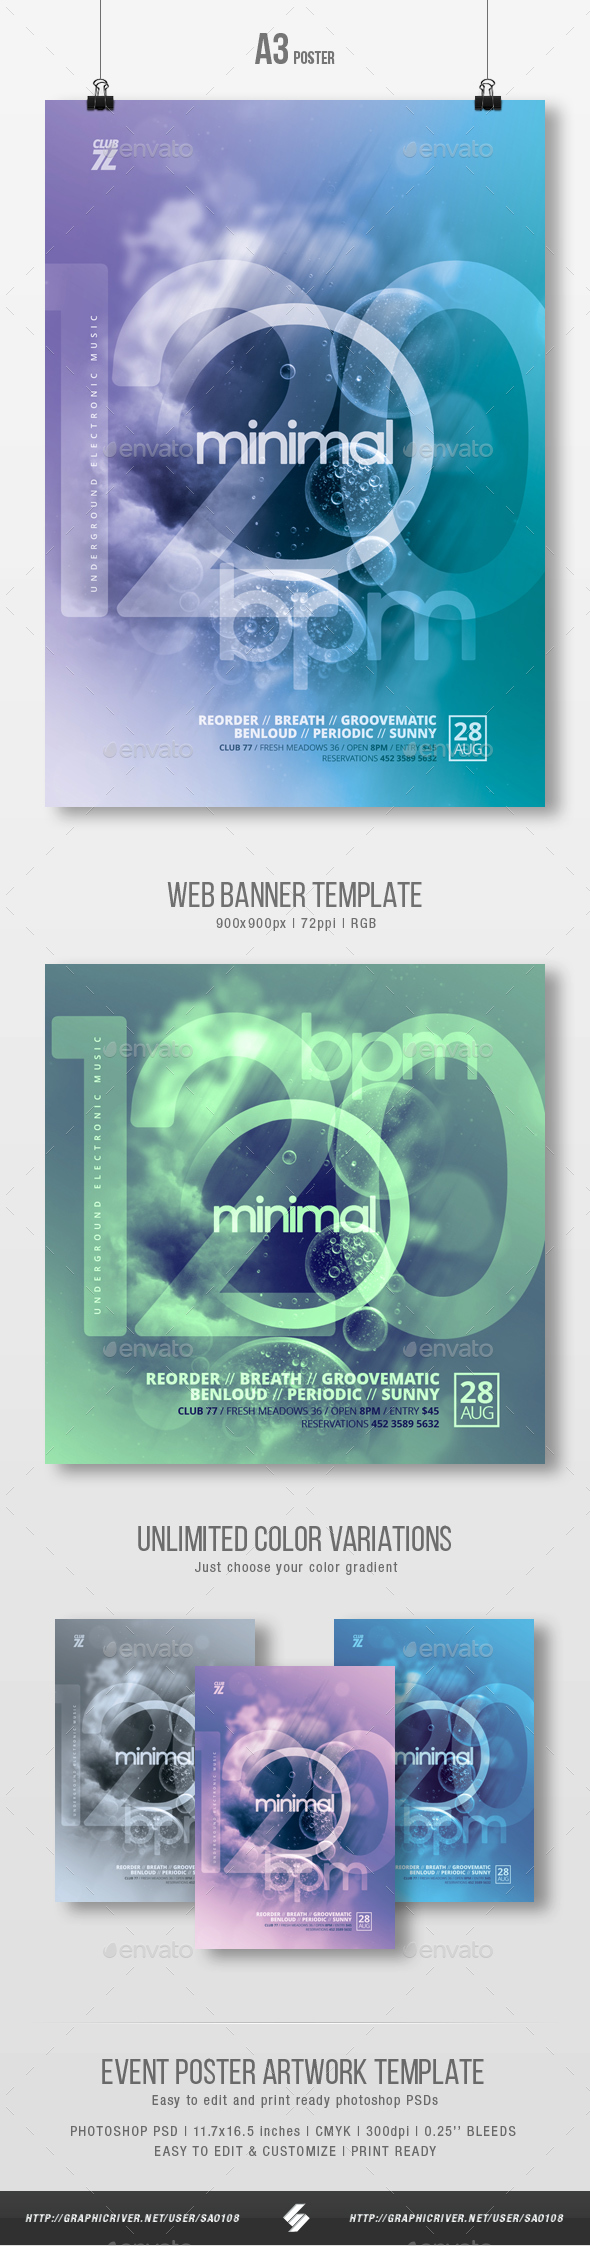 120 bpm - Minimal Party Flyer / Poster Template A3 - Clubs & Parties Events